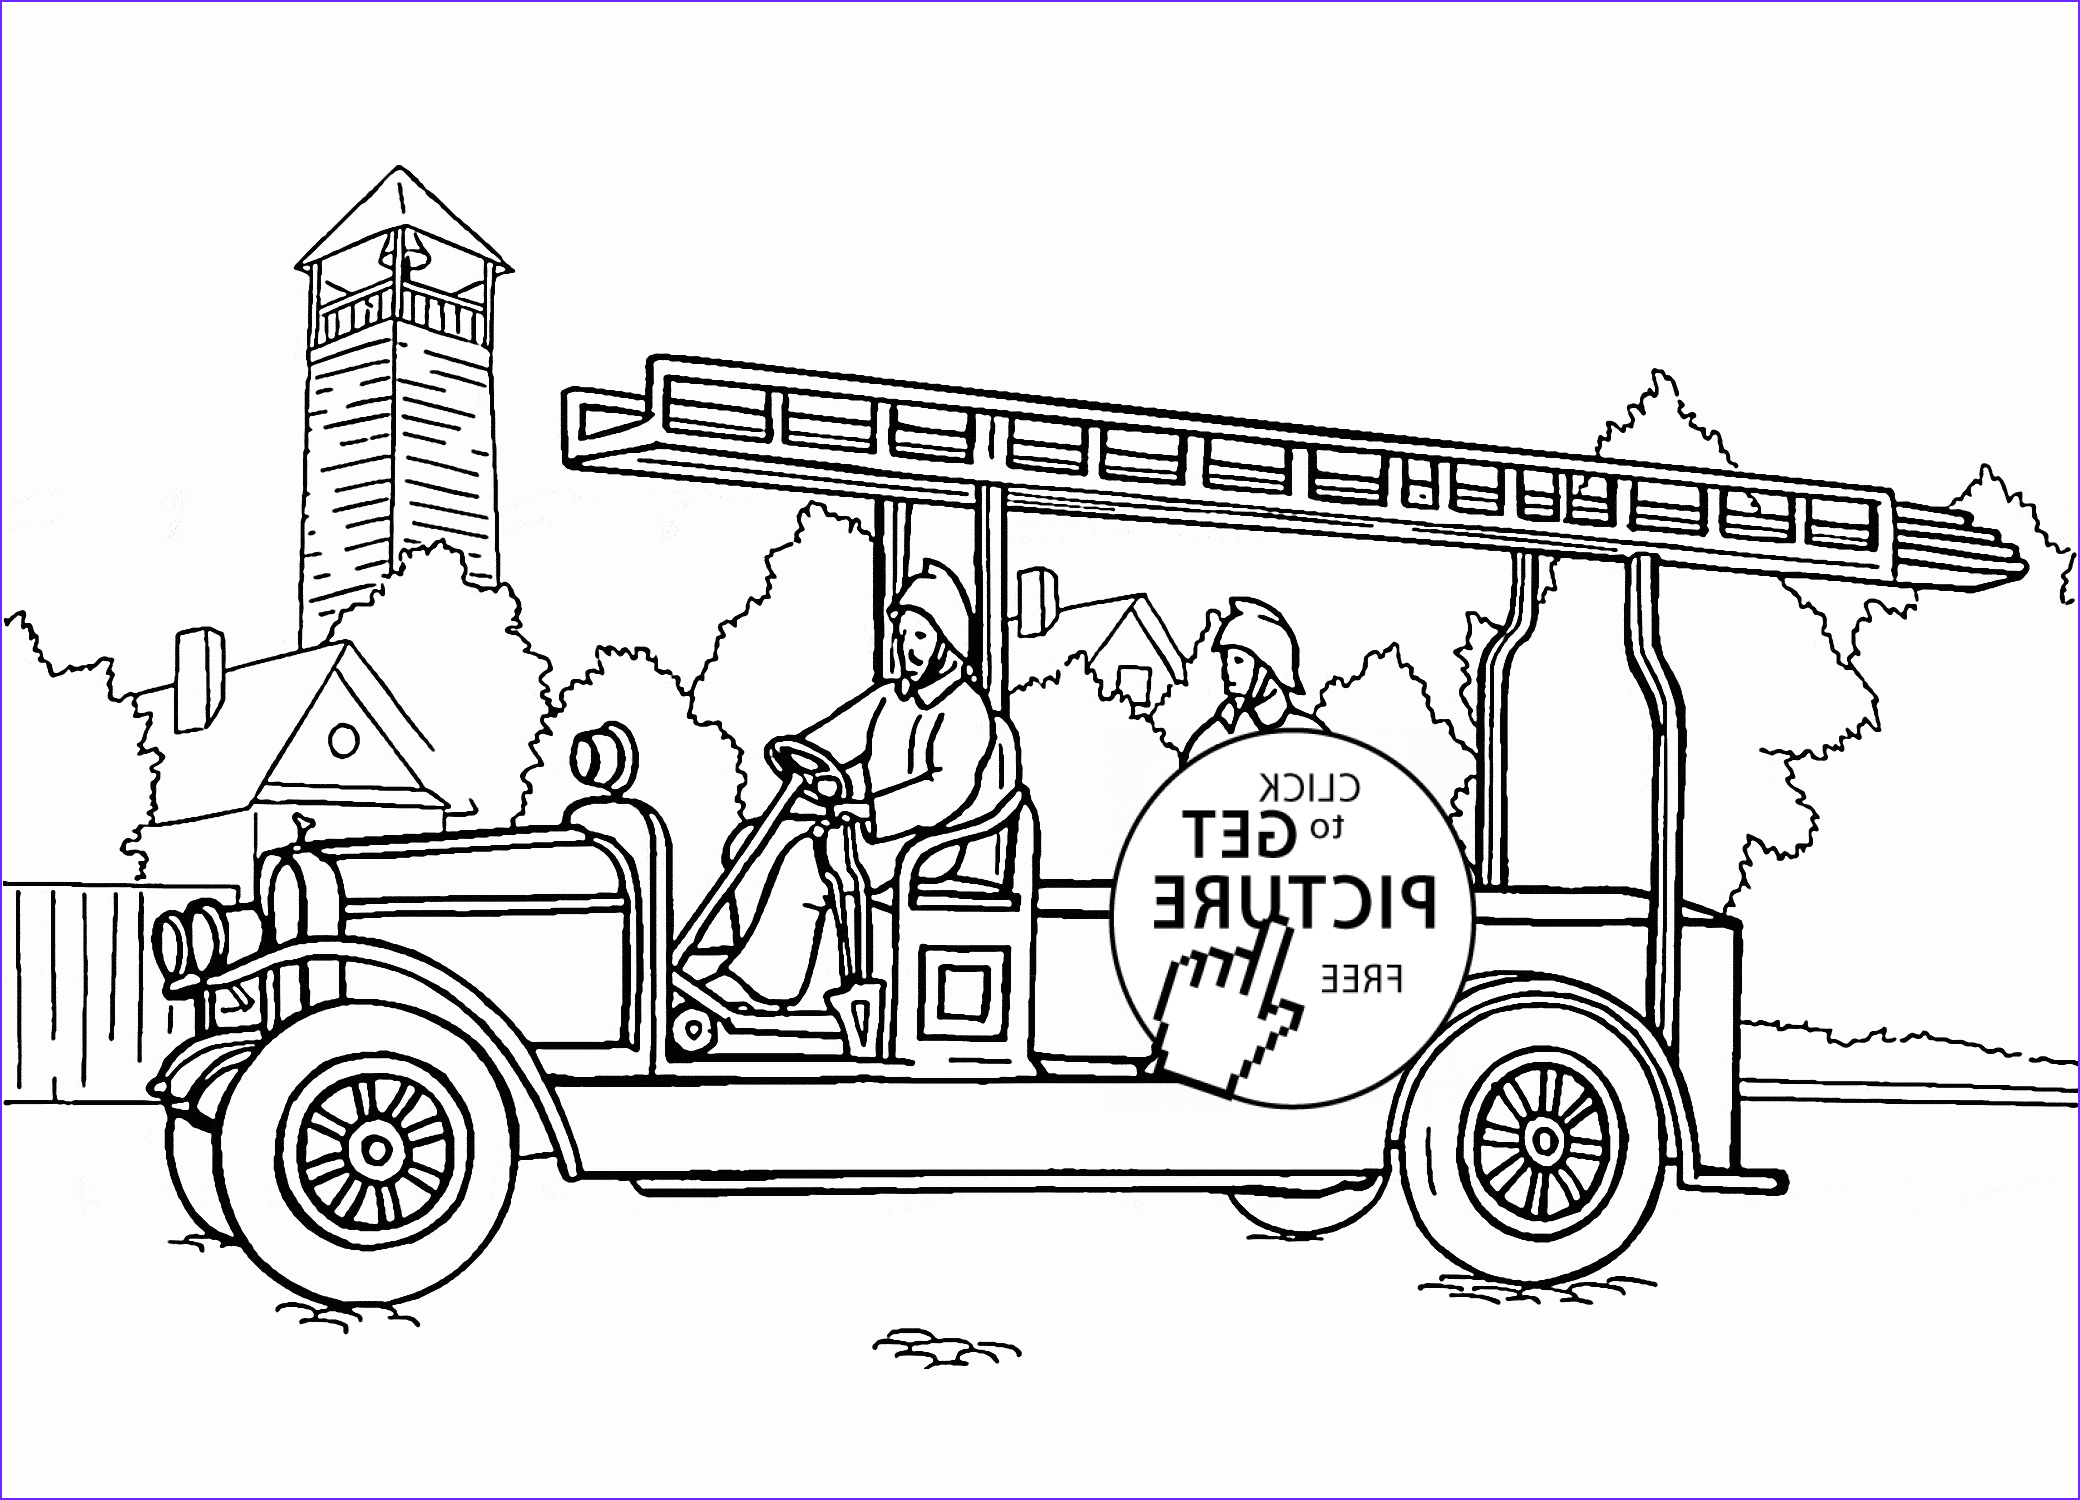 Free Fire Truck Coloring Page Printable Unique Photos Free Fire Truck Coloring Pages Printable for Preschool